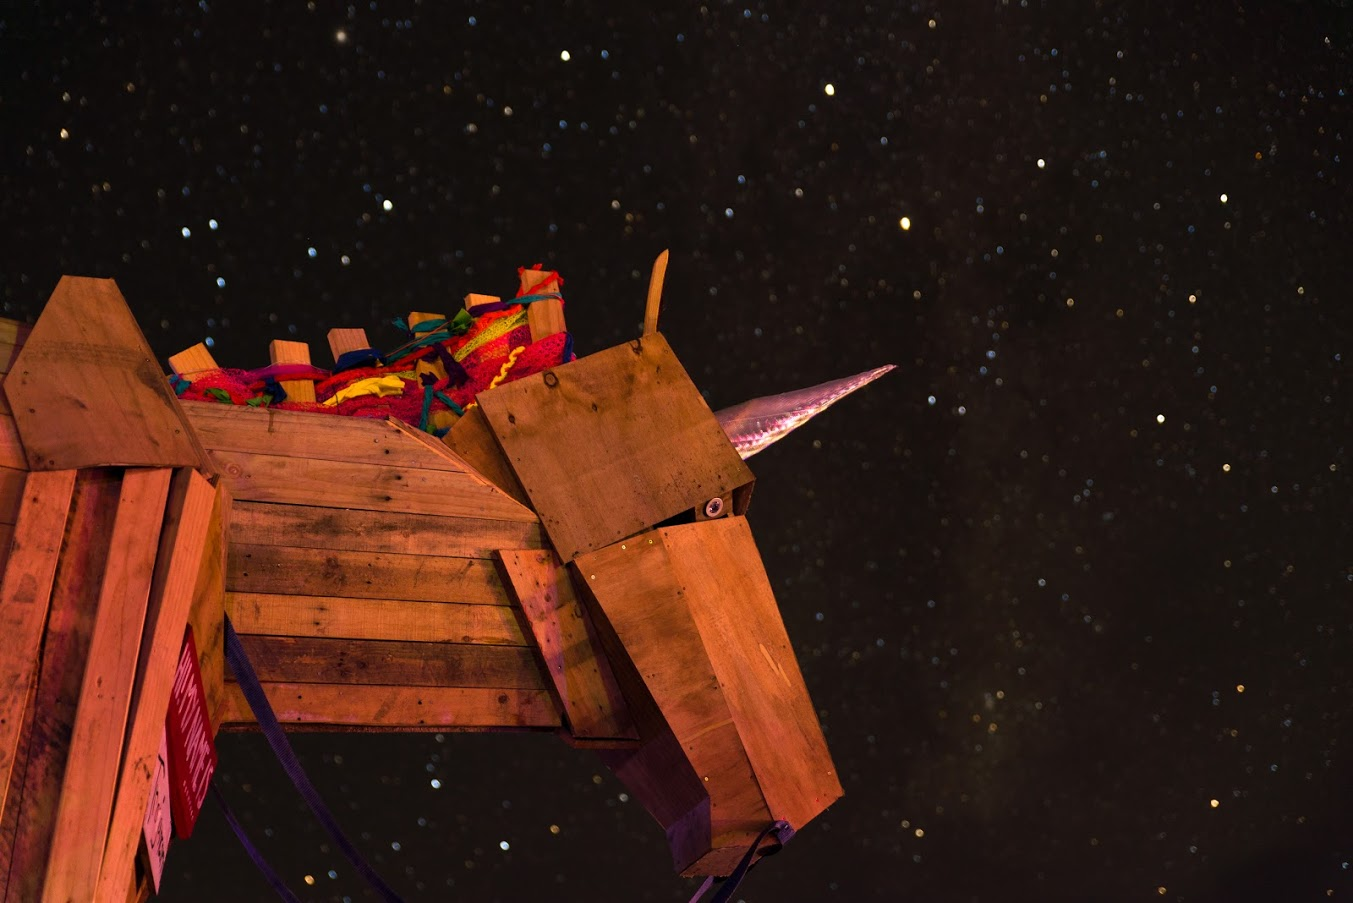 A unicorn sculpture made of wood with the starry night sky in the background.